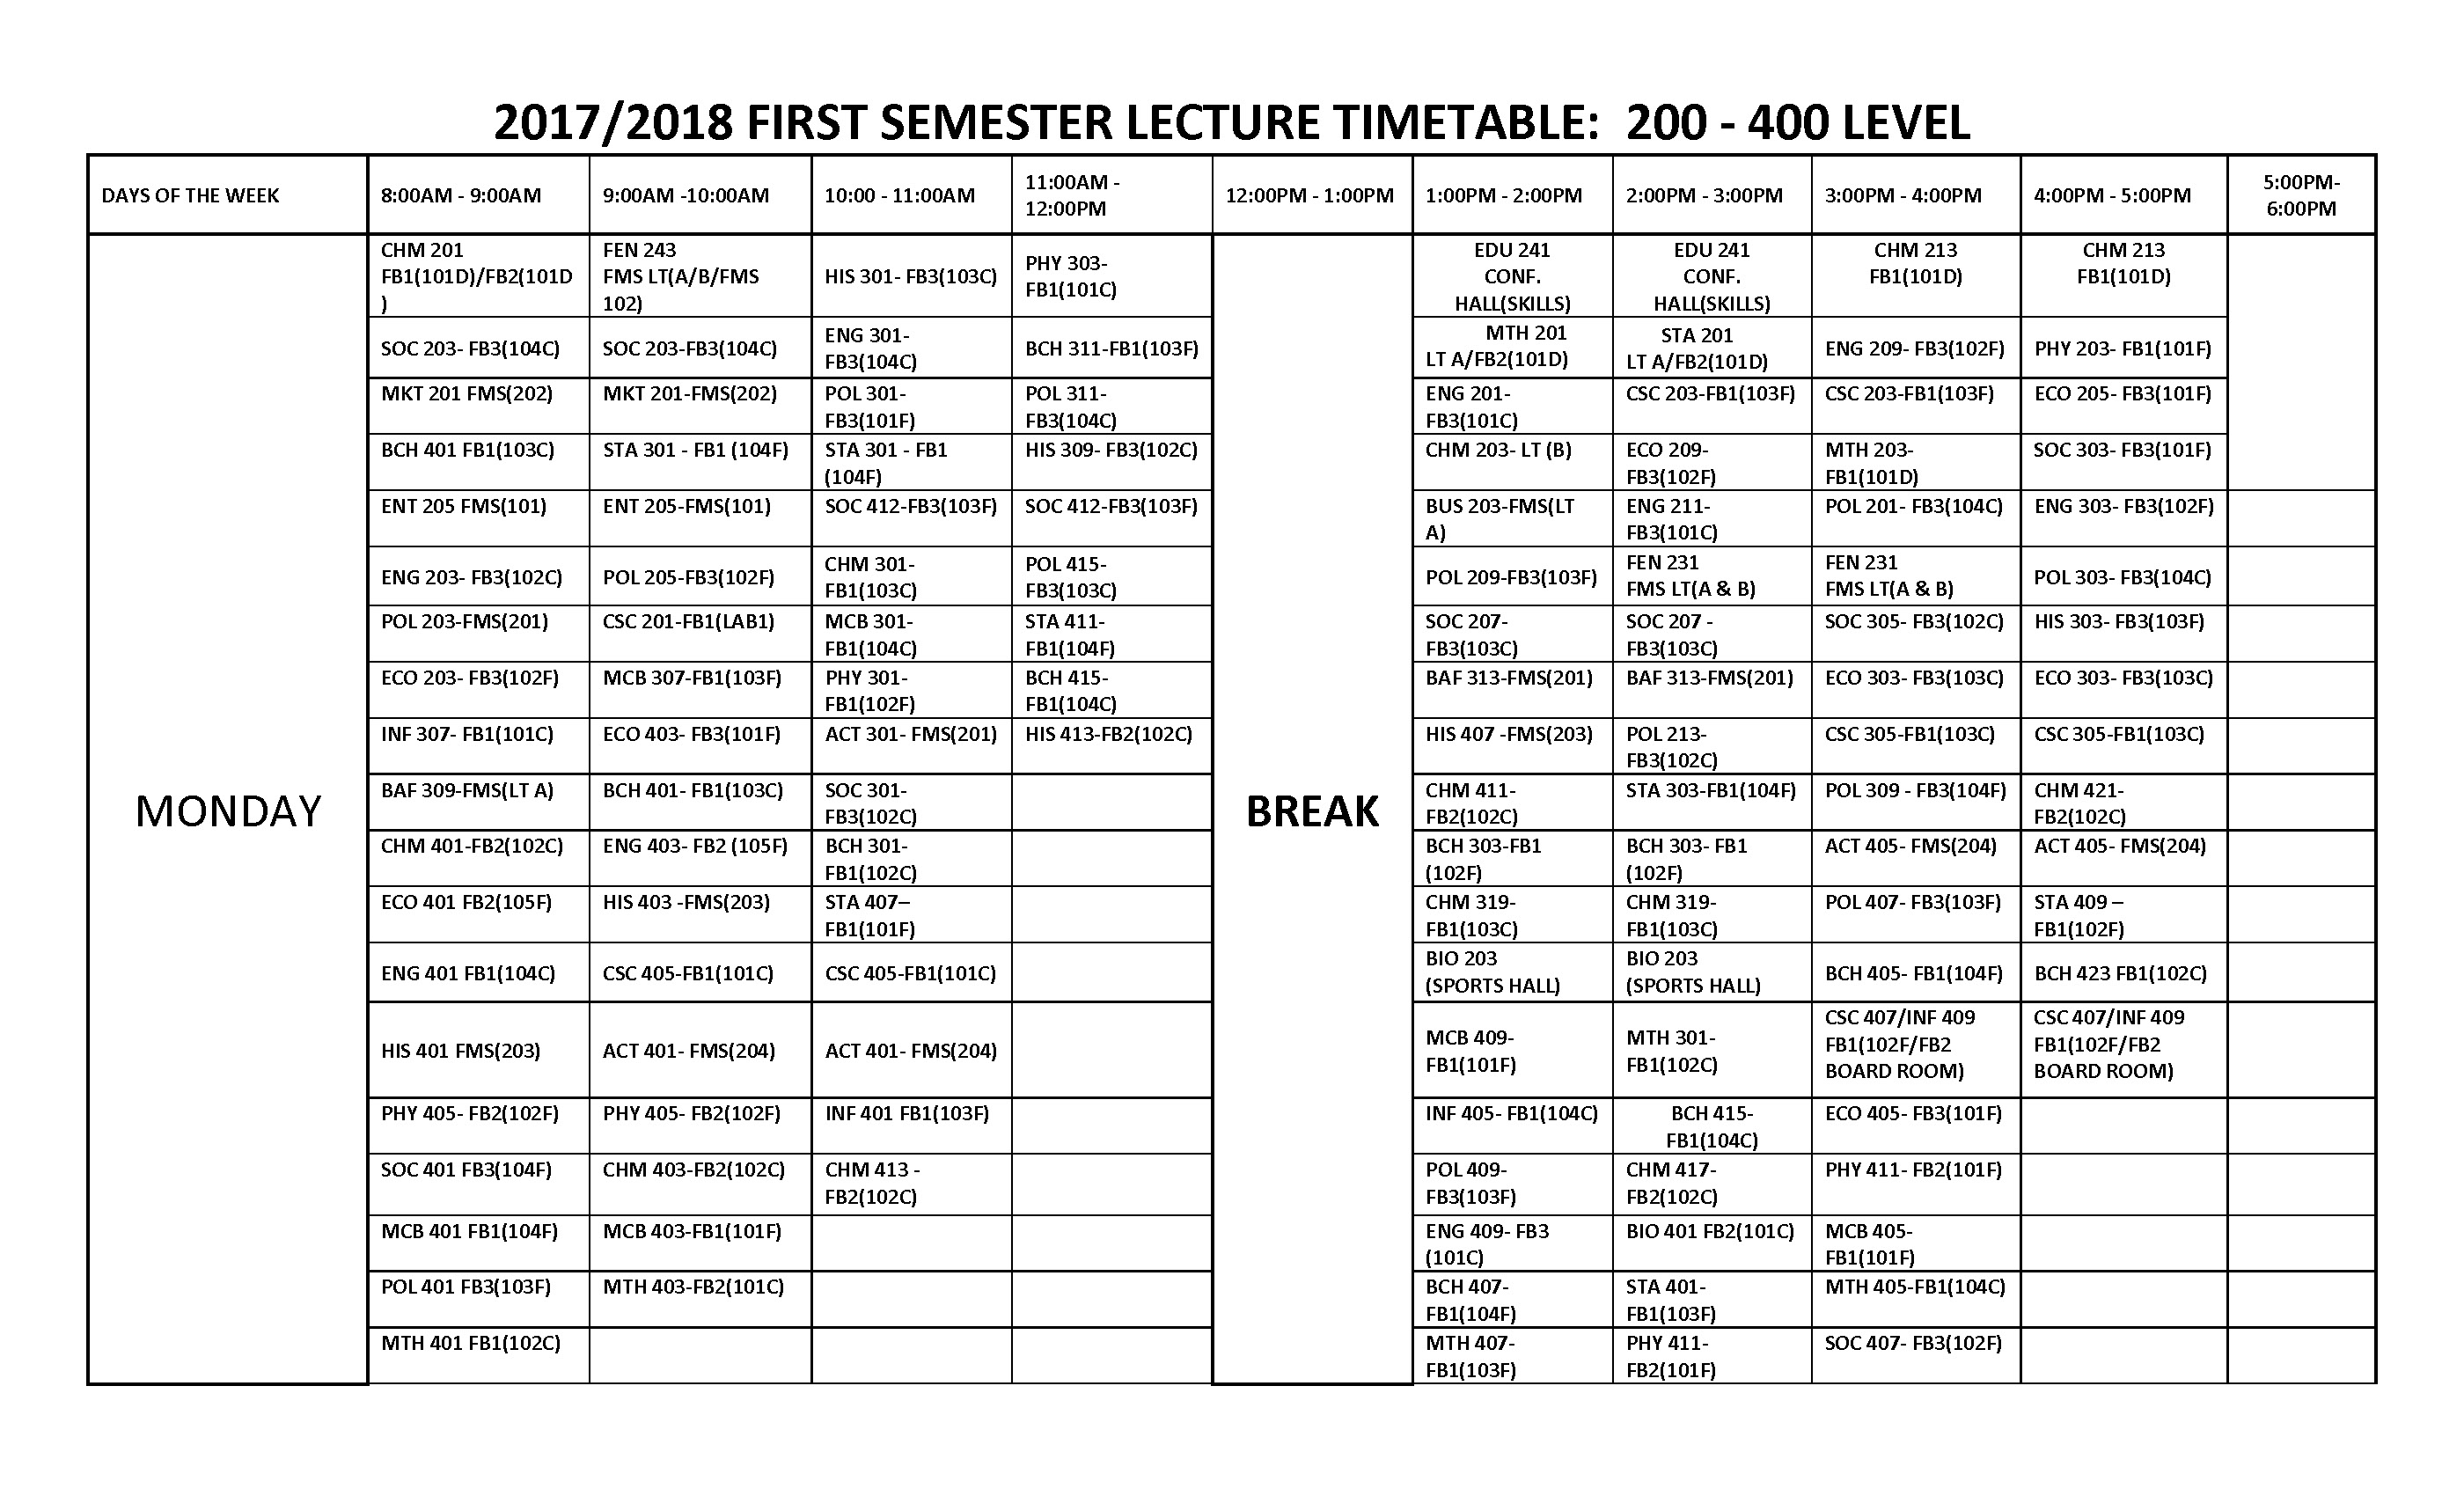 FUOTUOKE Lecture Timetable